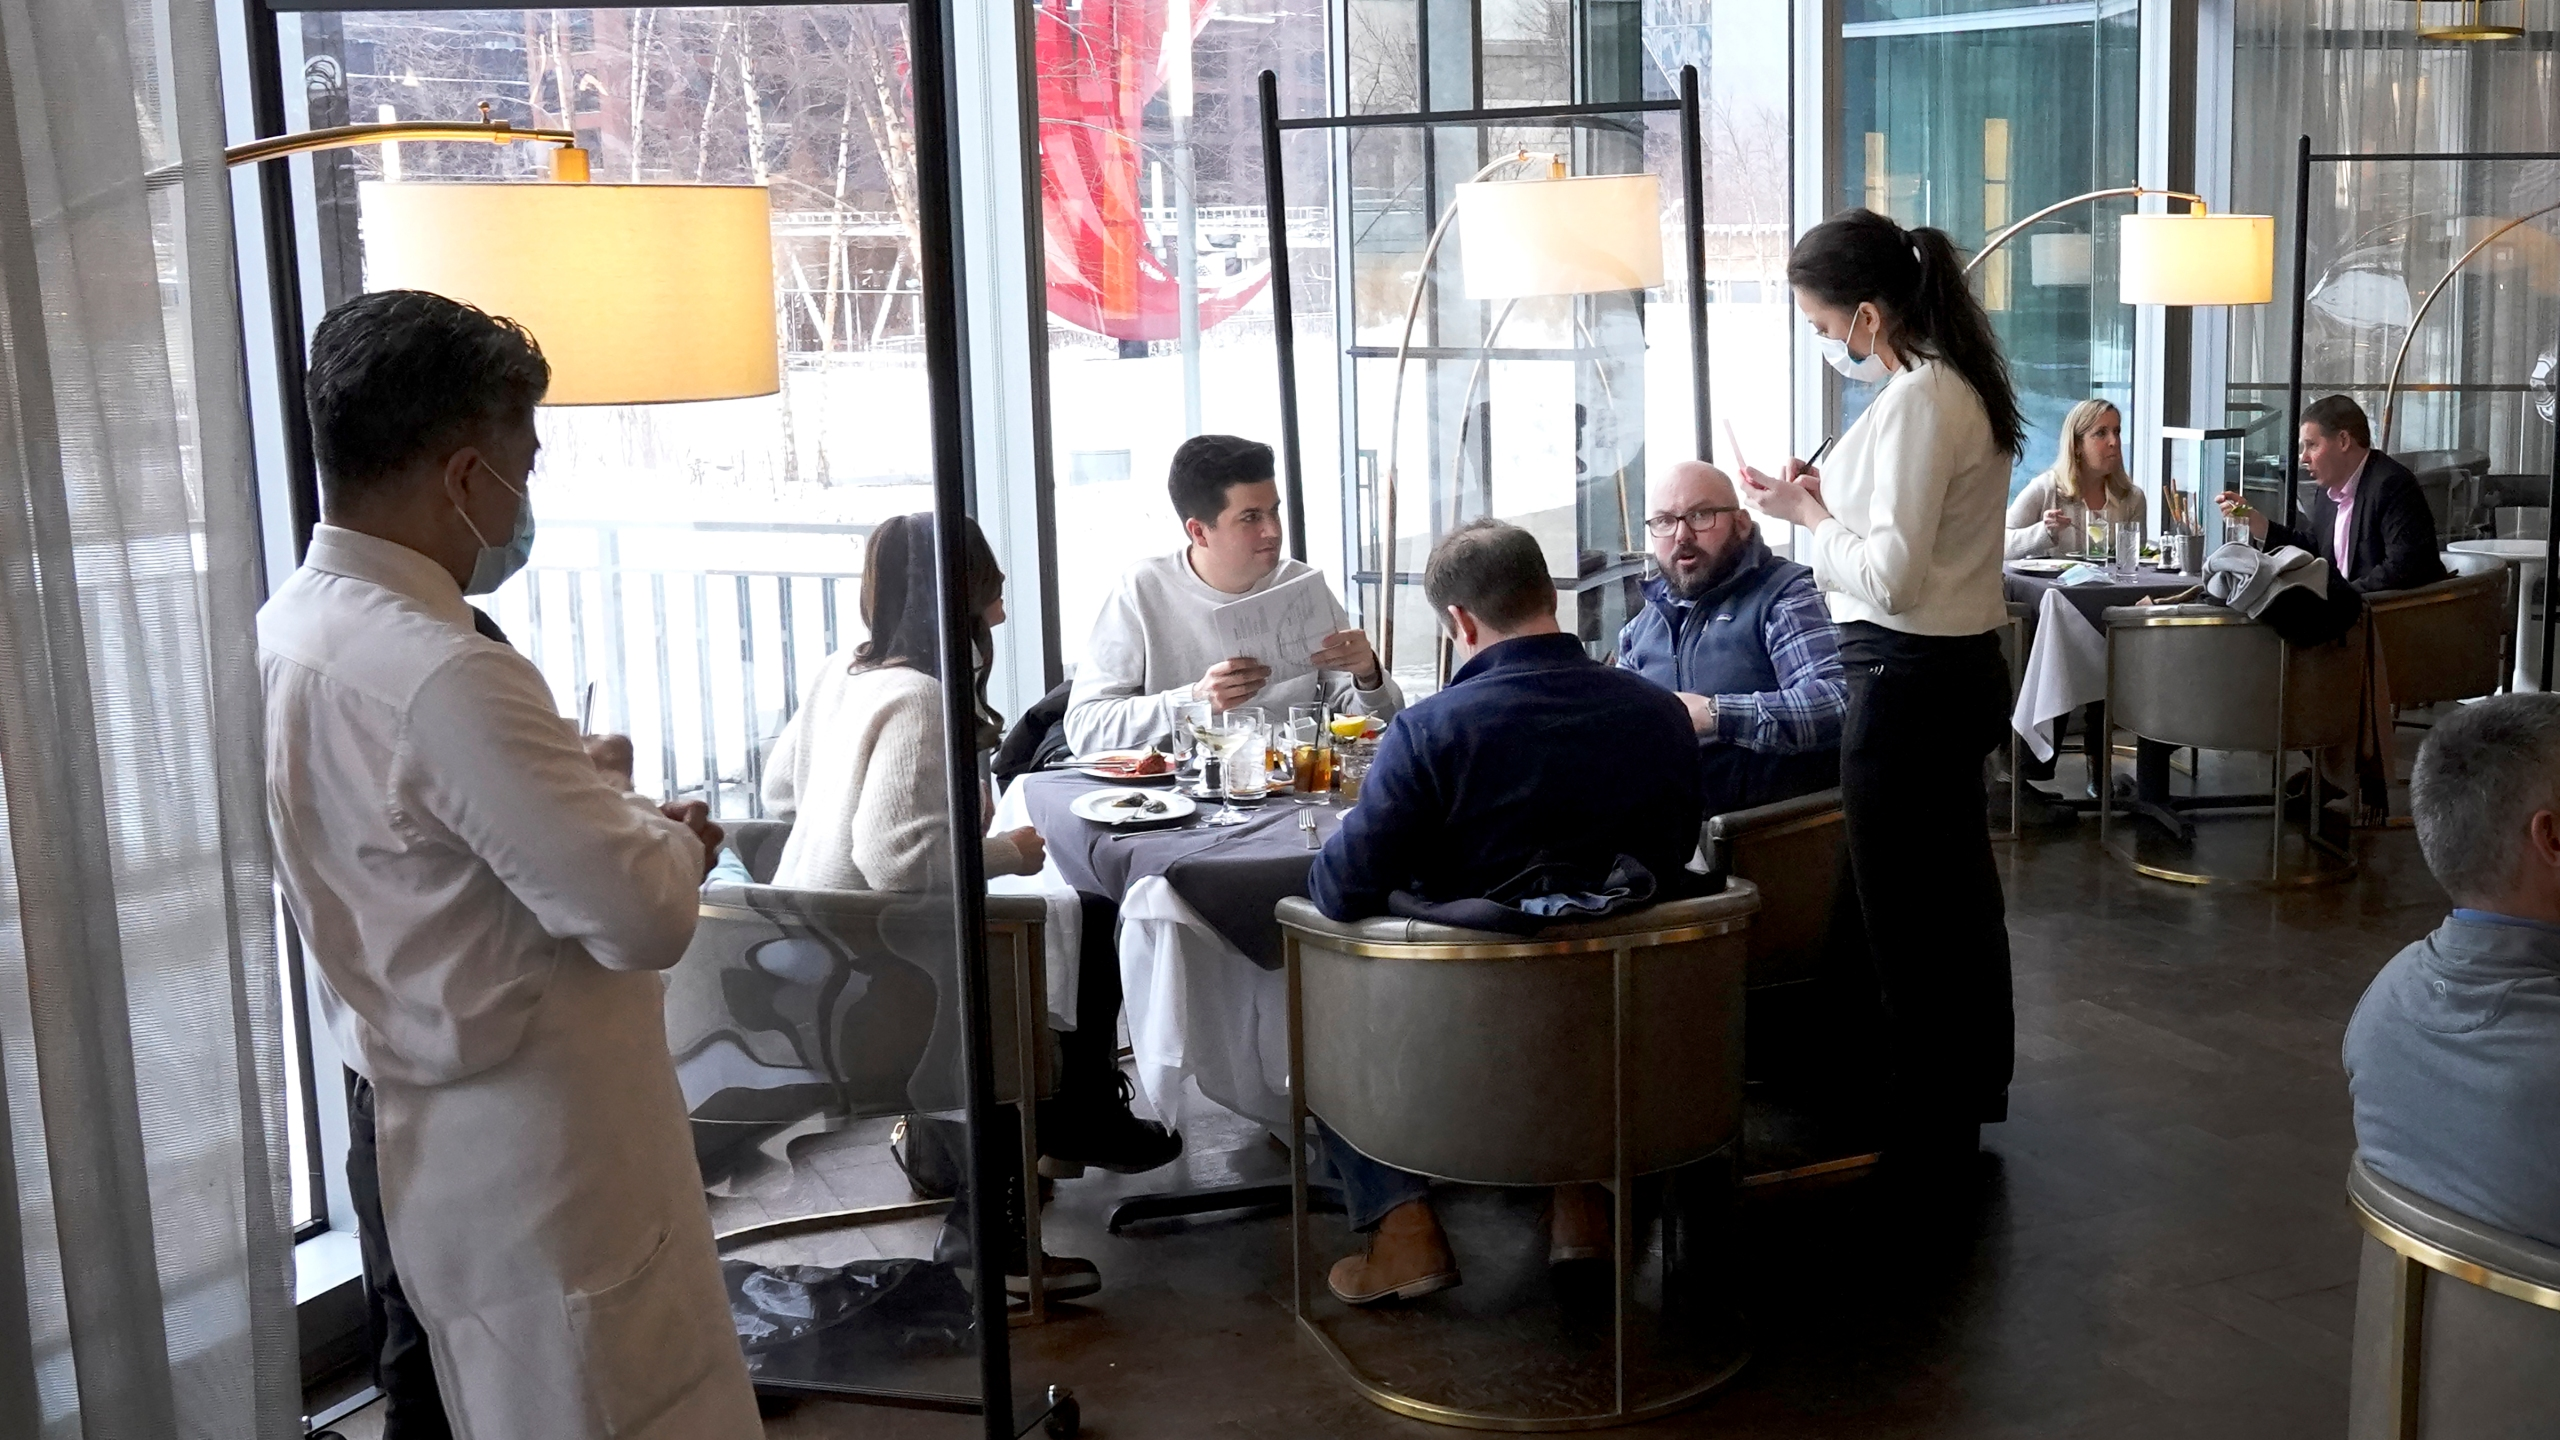 In this Jan. 27, 2021, file photo, patrons enjoy lunch indoors at Gibsons Italia restaurant in Chicago. States are beginning to ease coronavirus restrictions, but health experts say we don't know enough yet about variants to roll back measures that could help slow their spread. (AP Photo/Charles Rex Arbogast, File)